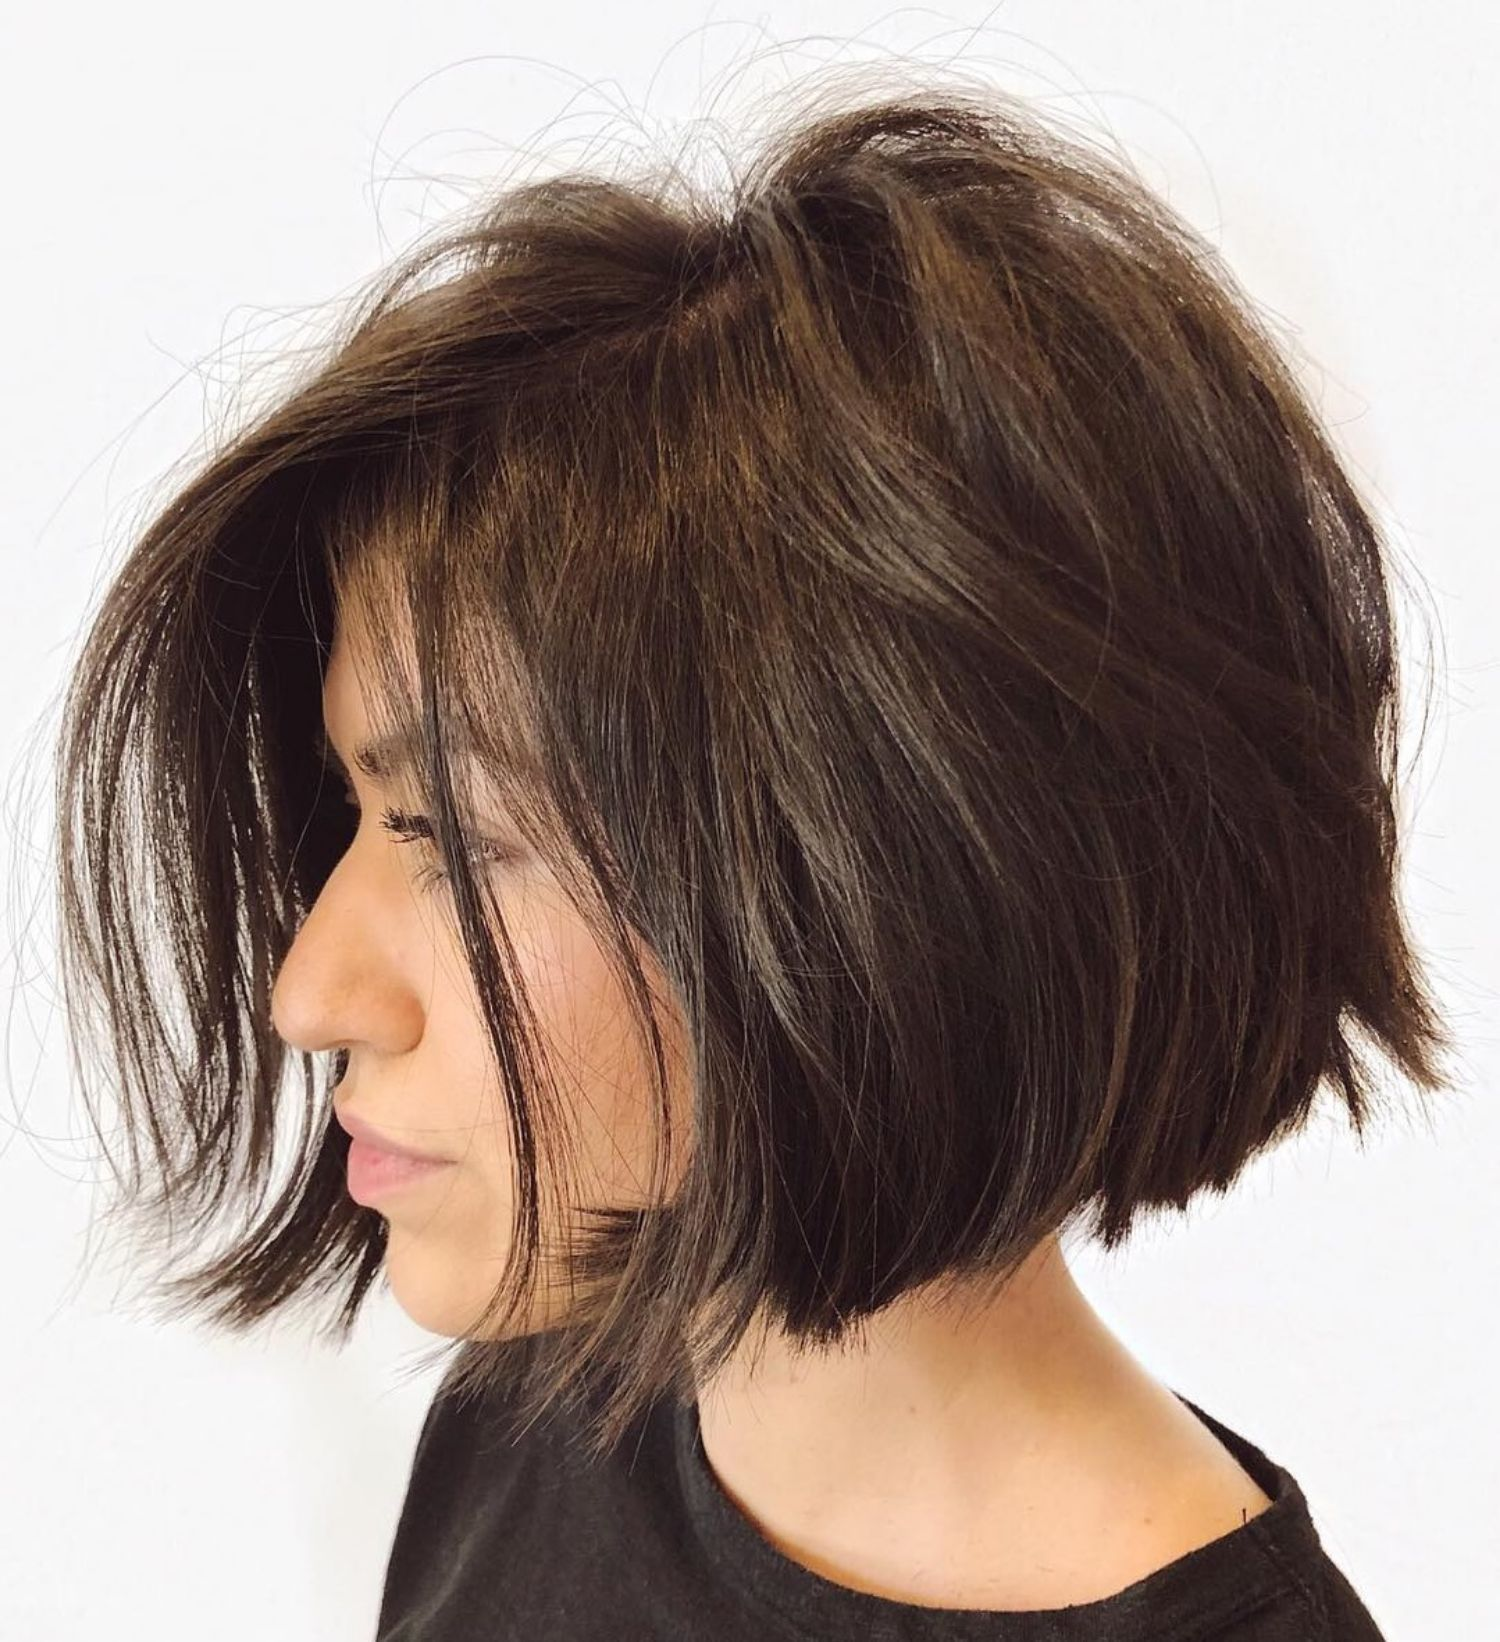 60 Classy Short Haircuts And Hairstyles For Thick Hair Haircut For Thick Hair Thick Hair Styles Hair Styles